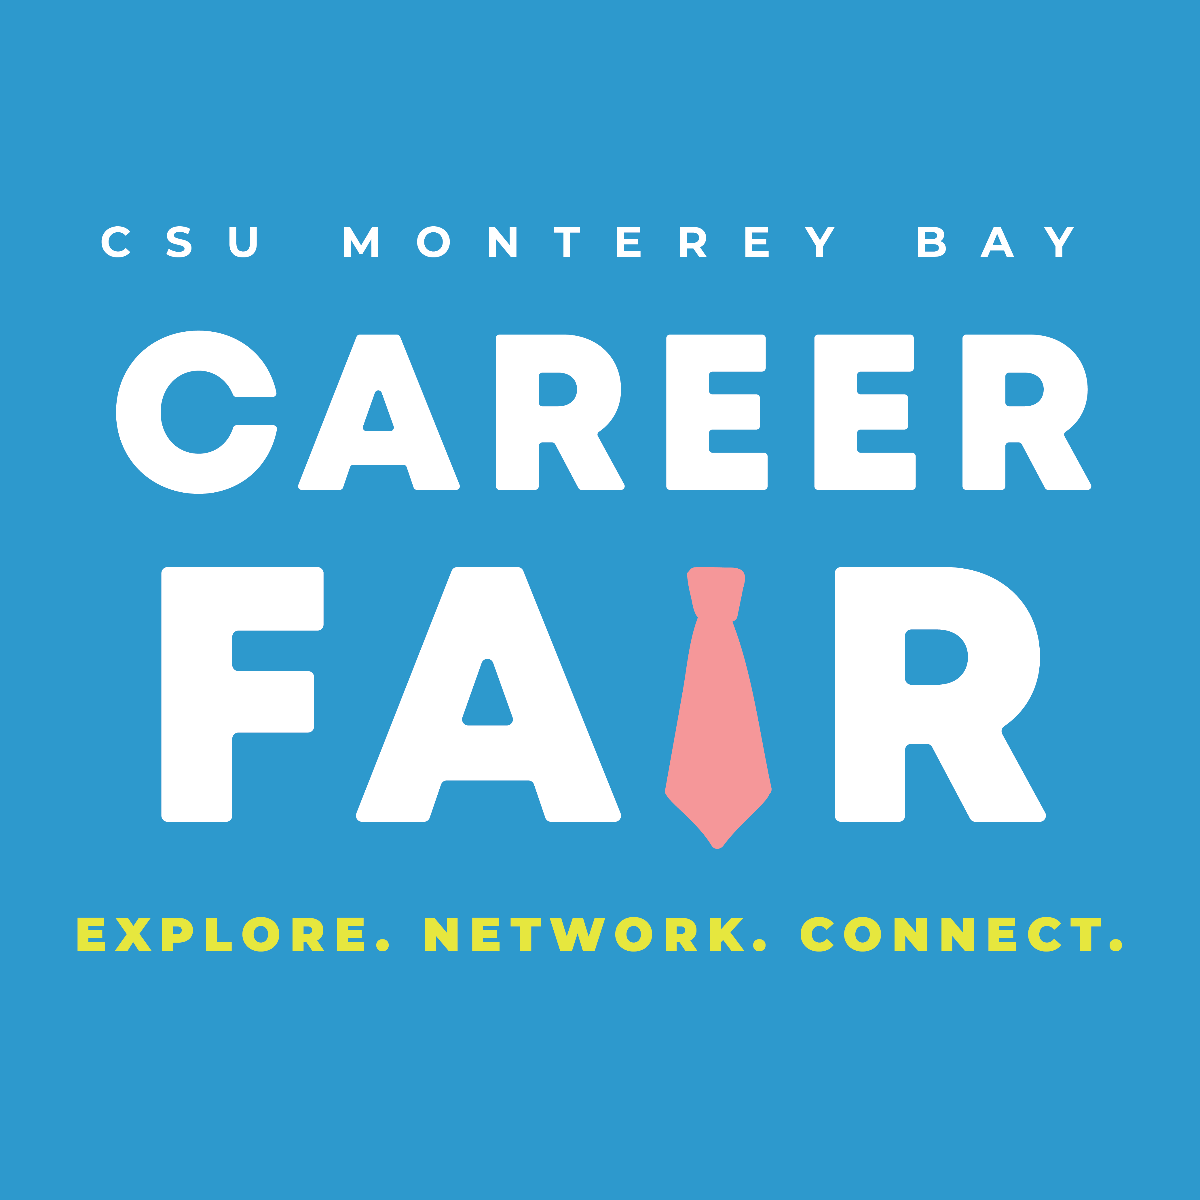 Event image for the 2019 Career Fair.